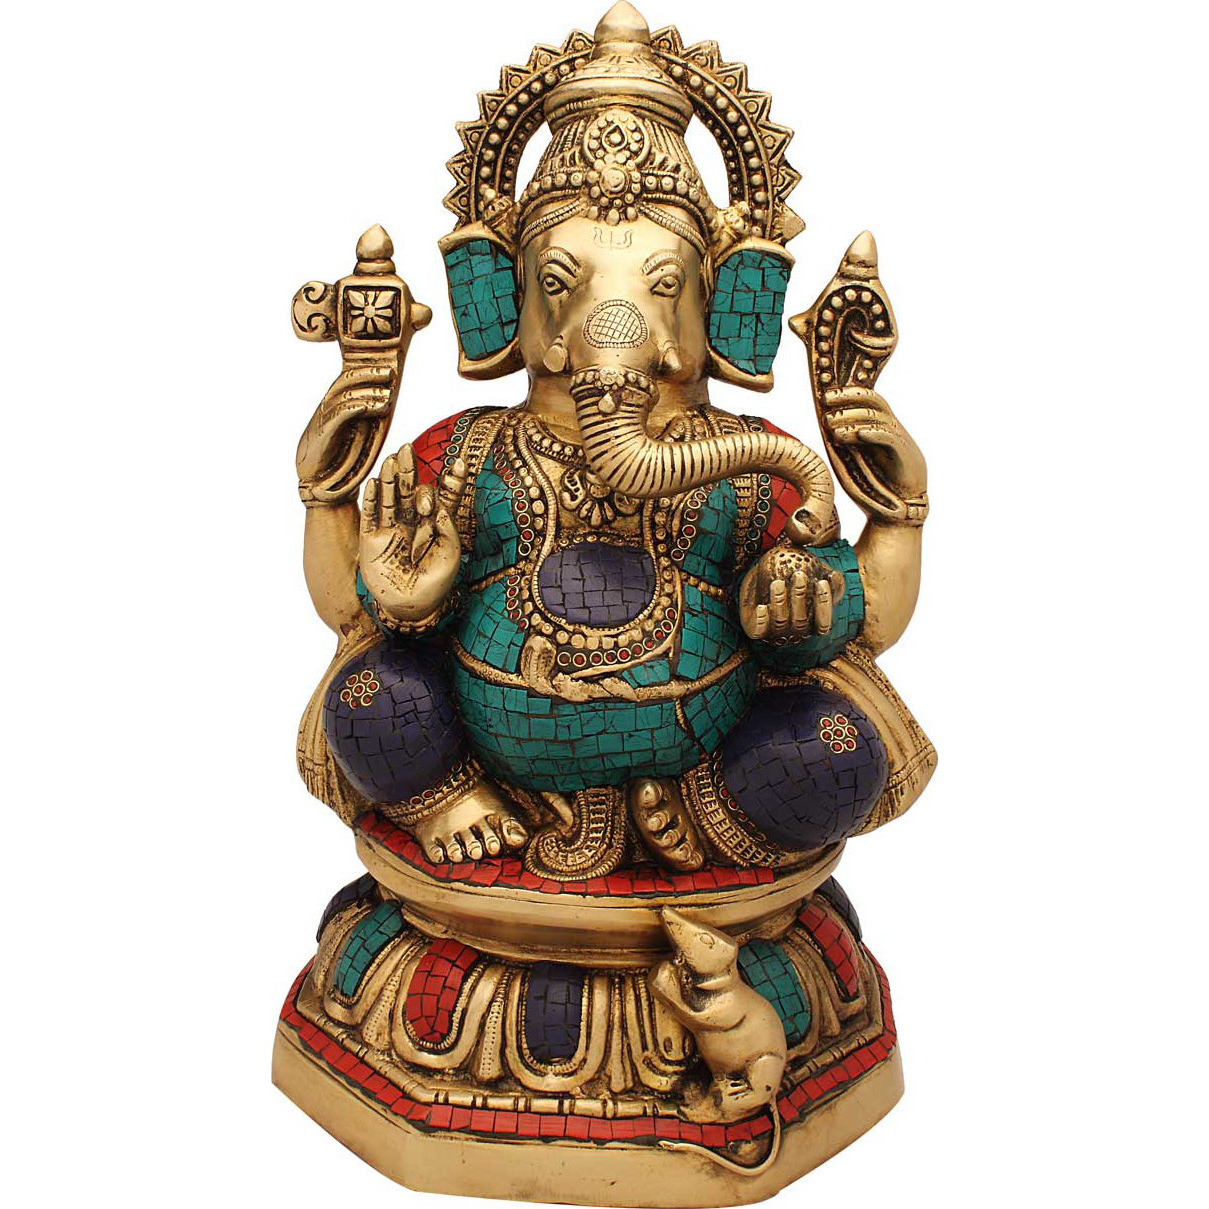 Elephant lord hindu gods ganesh statue nepal turquoise coral religious dicor 16